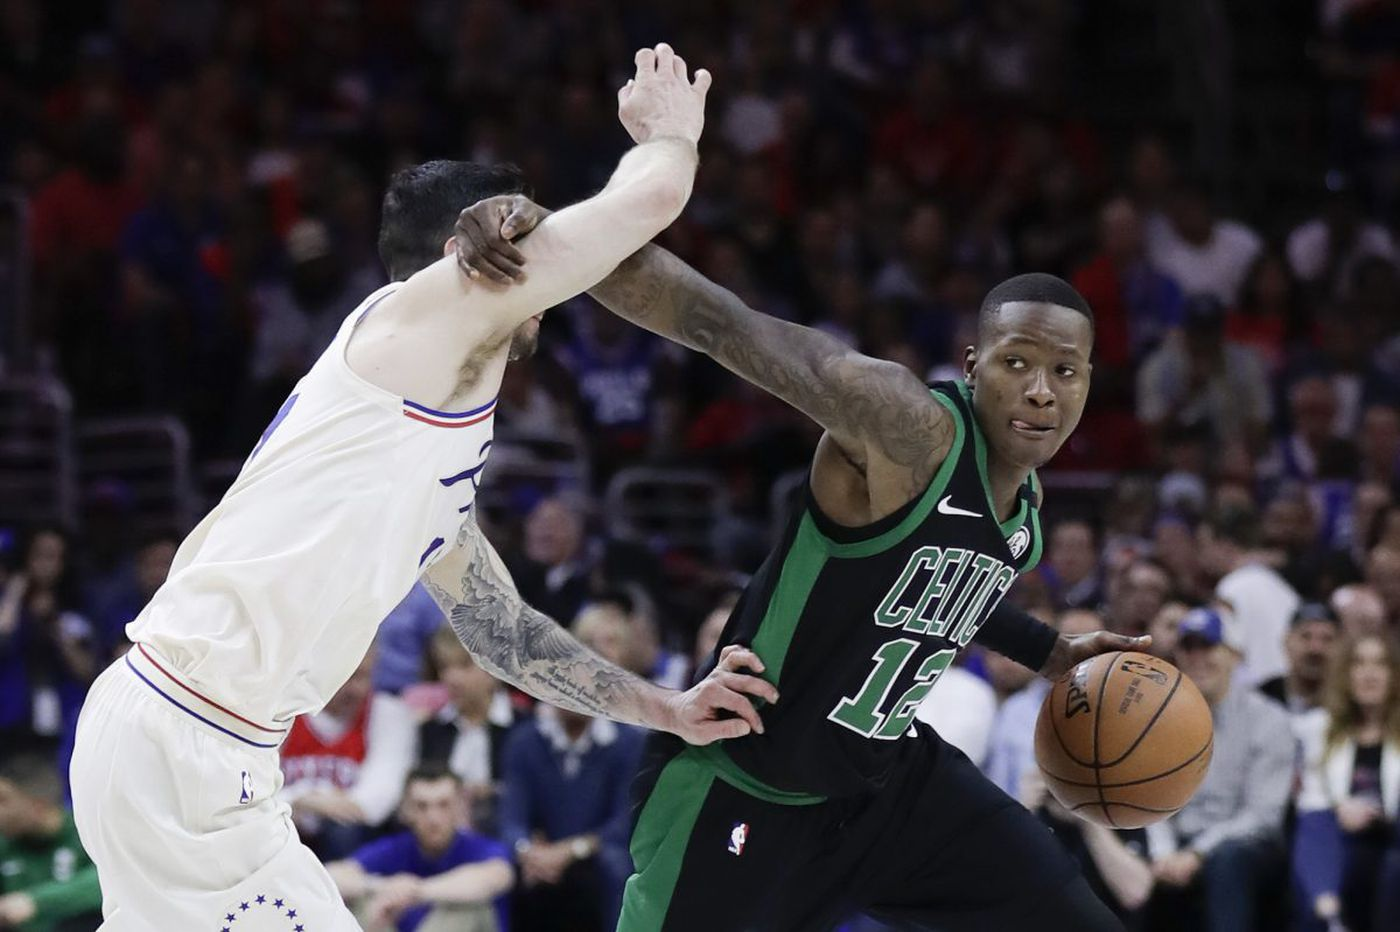 'They played better than us:' Celtics lose poise, and game, to Sixers